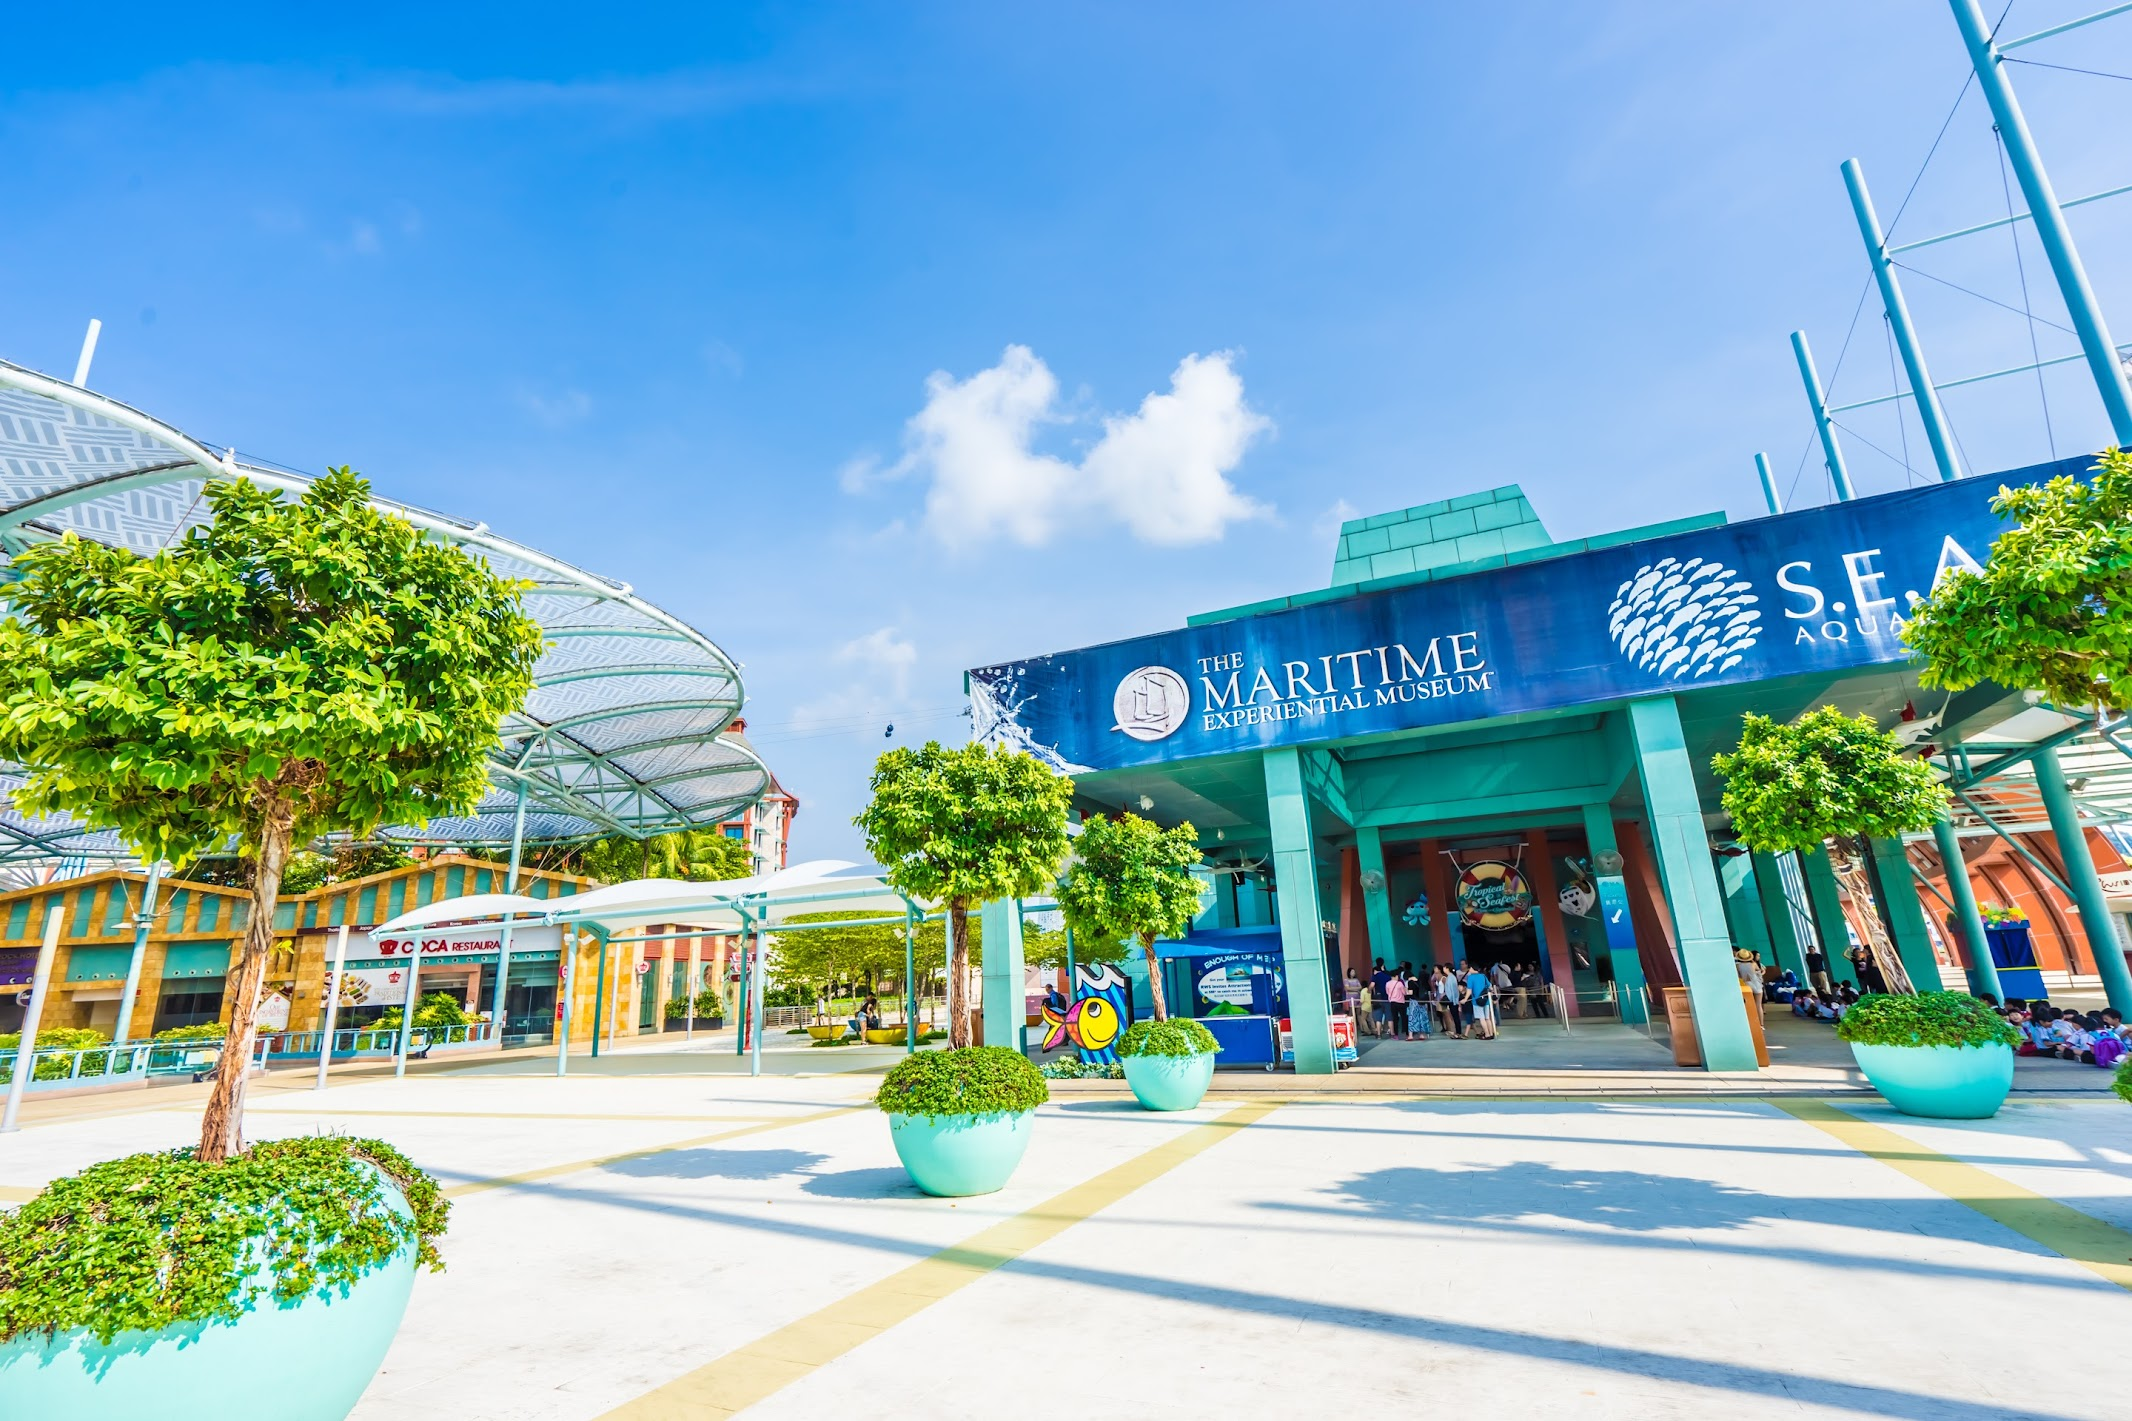 Singapore Sentosa S.E.A. Aquarium1